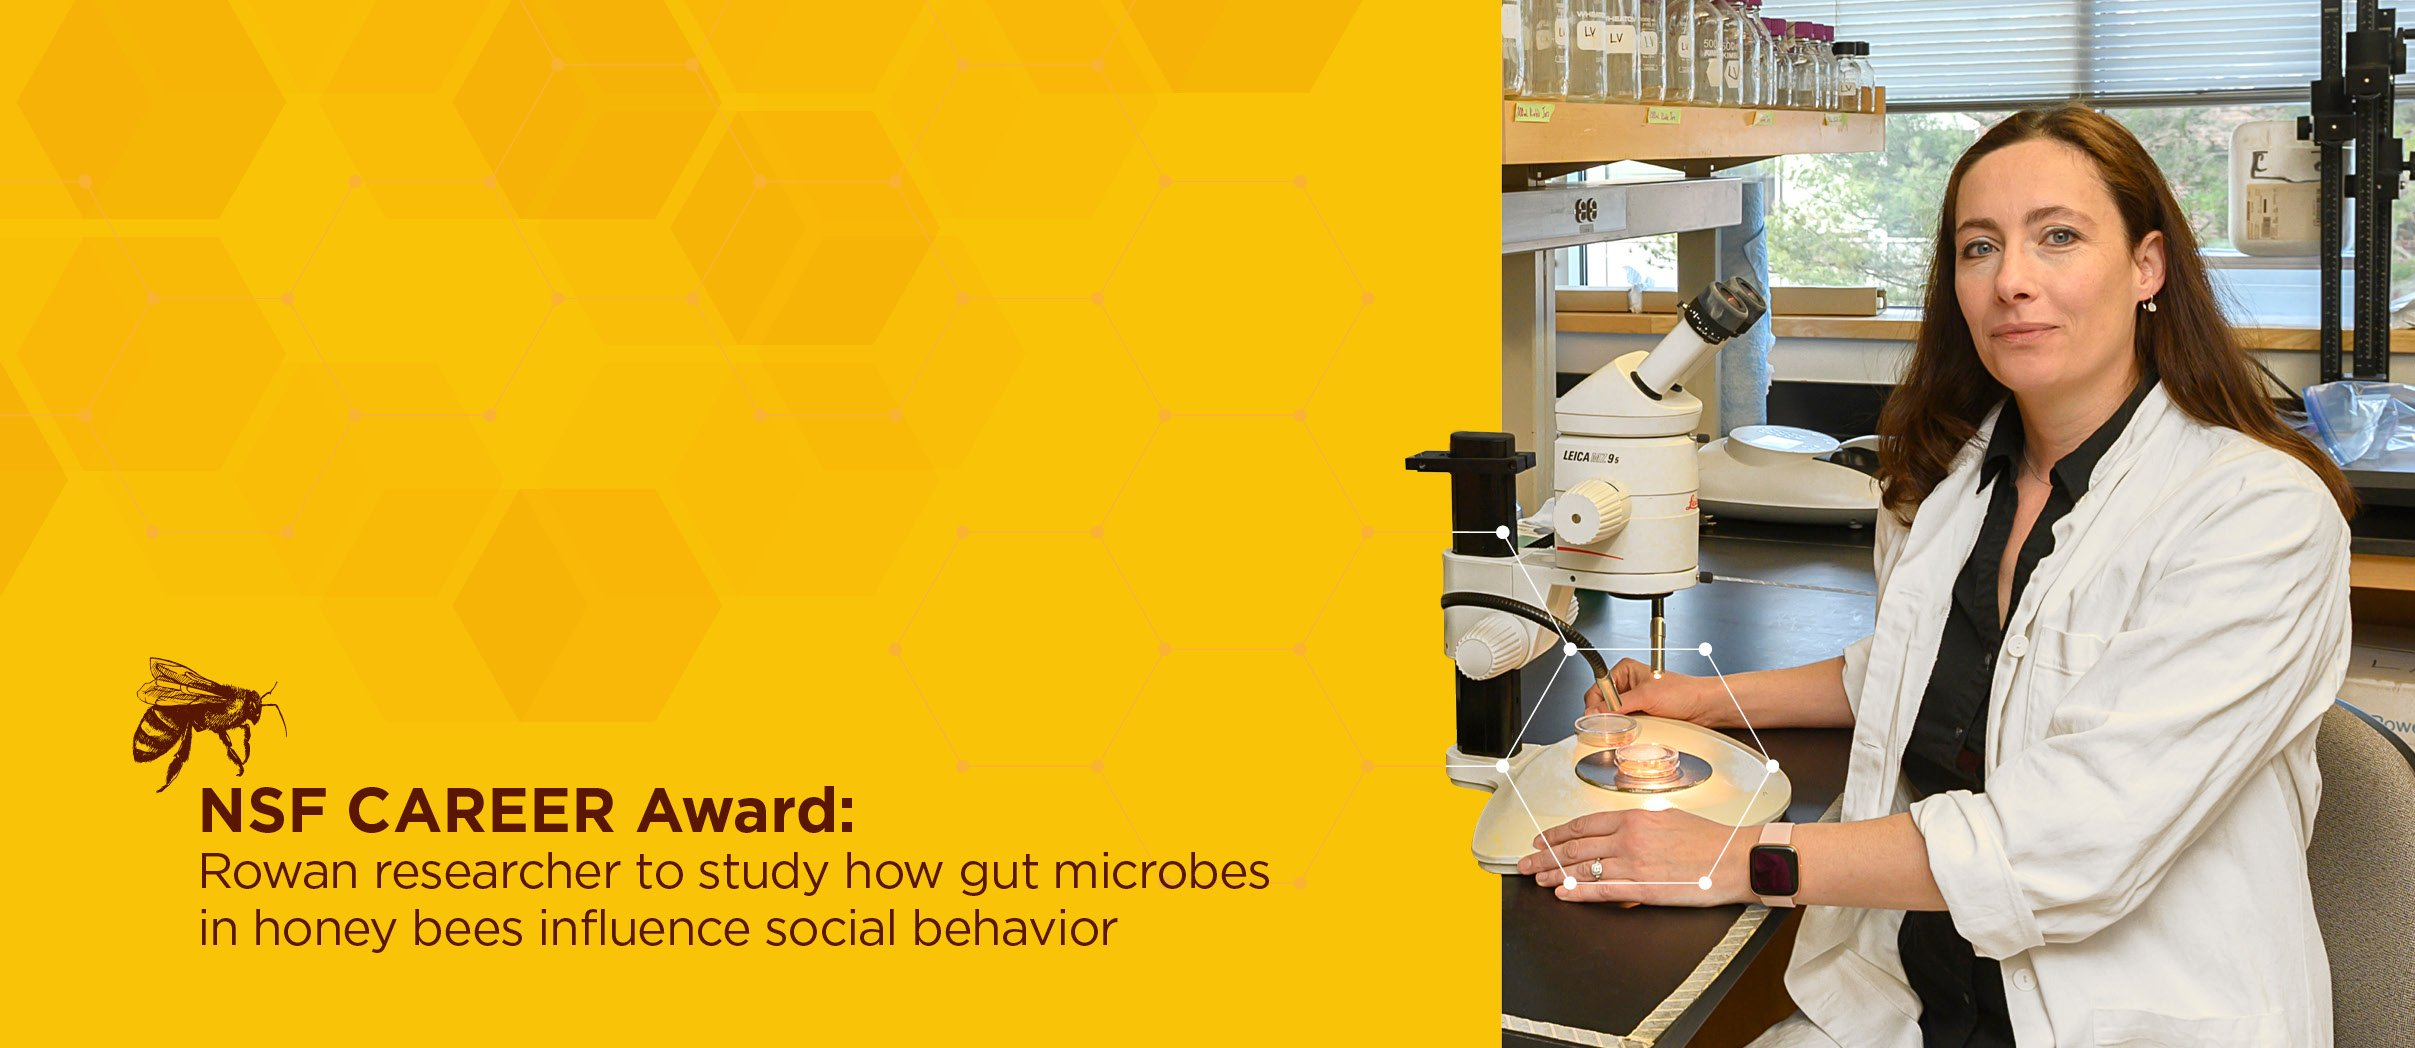 NSF CAREER Award: Rowan researcher, Dr. Svjetlana Vojvodic, to study gut microbes of honey bees